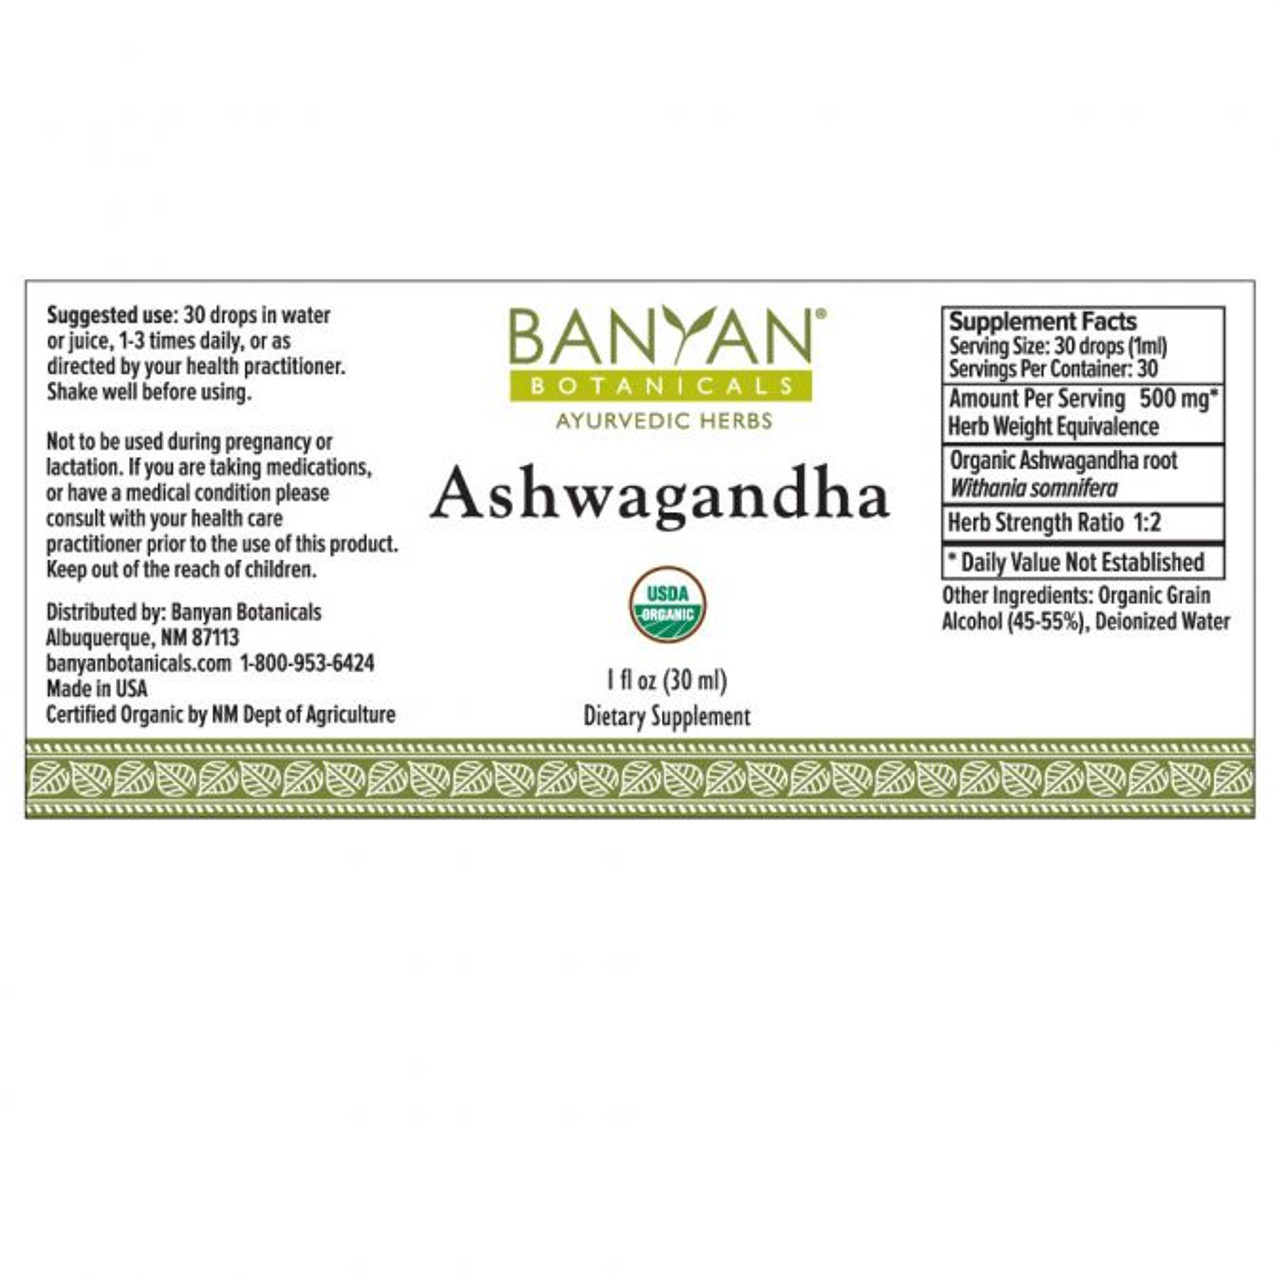 Banyan Botanicals Ashwagandha (Organic) Liquid Extract 1 oz ingredients